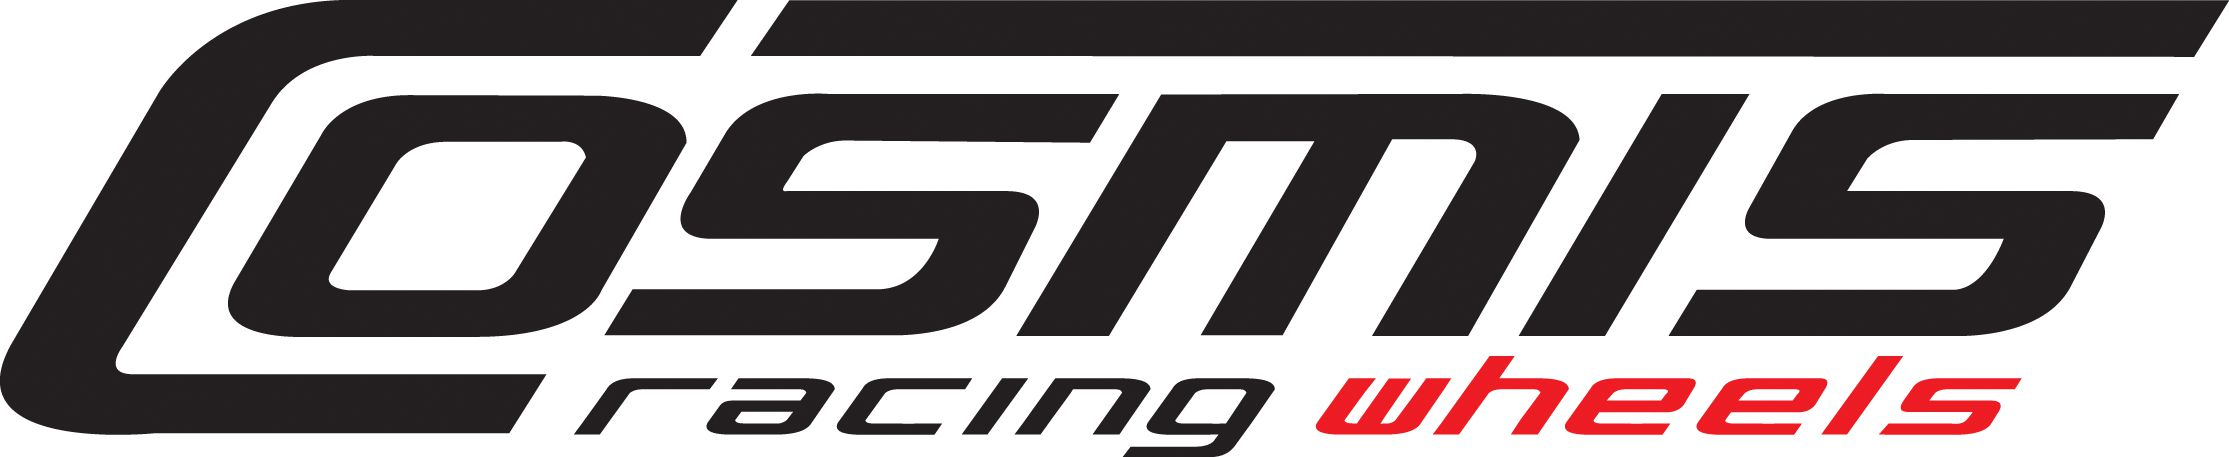 Cosmis Racing Wheels Logo